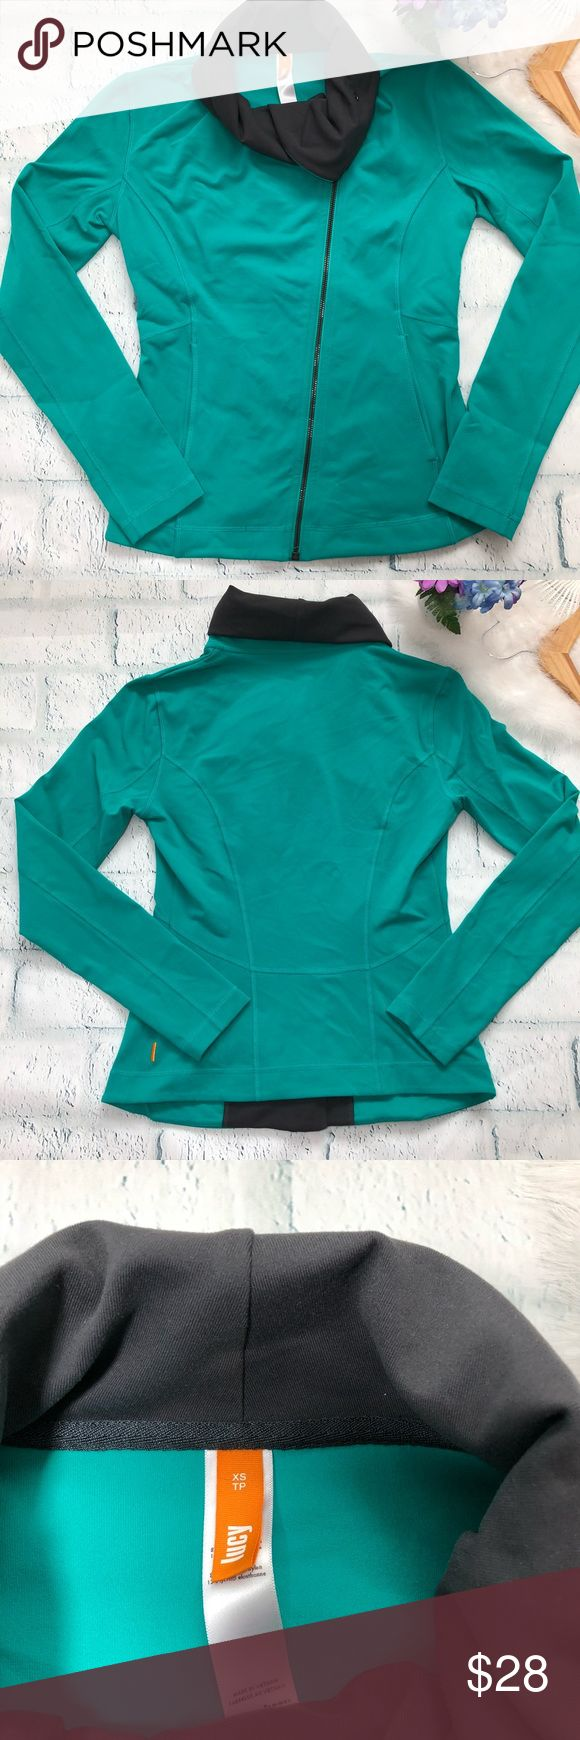 """Lucy Hatha Green  zip up sweatshirt size XS Lucy Hatha sweatshirt. Assimetric zipper . Zip up. Size XS. Snap closure Button at neck. Front pockets. Gray collar. Color is green . In pre loved conditions.  ALL MEASUREMENTS ARE APPROXIMATE AND LAYING FLAT: 🔸LENGTH: 22.5"""" 🔸PIT TO PIT: 17.5"""" 🔸WAIST: 15"""" 🔸 SLEEVES: 24.5"""" FEEL FREE TO ASK QUESTIONS  I DO NOT TRADE Lucy Tops Sweatshirts & Hoodies"""